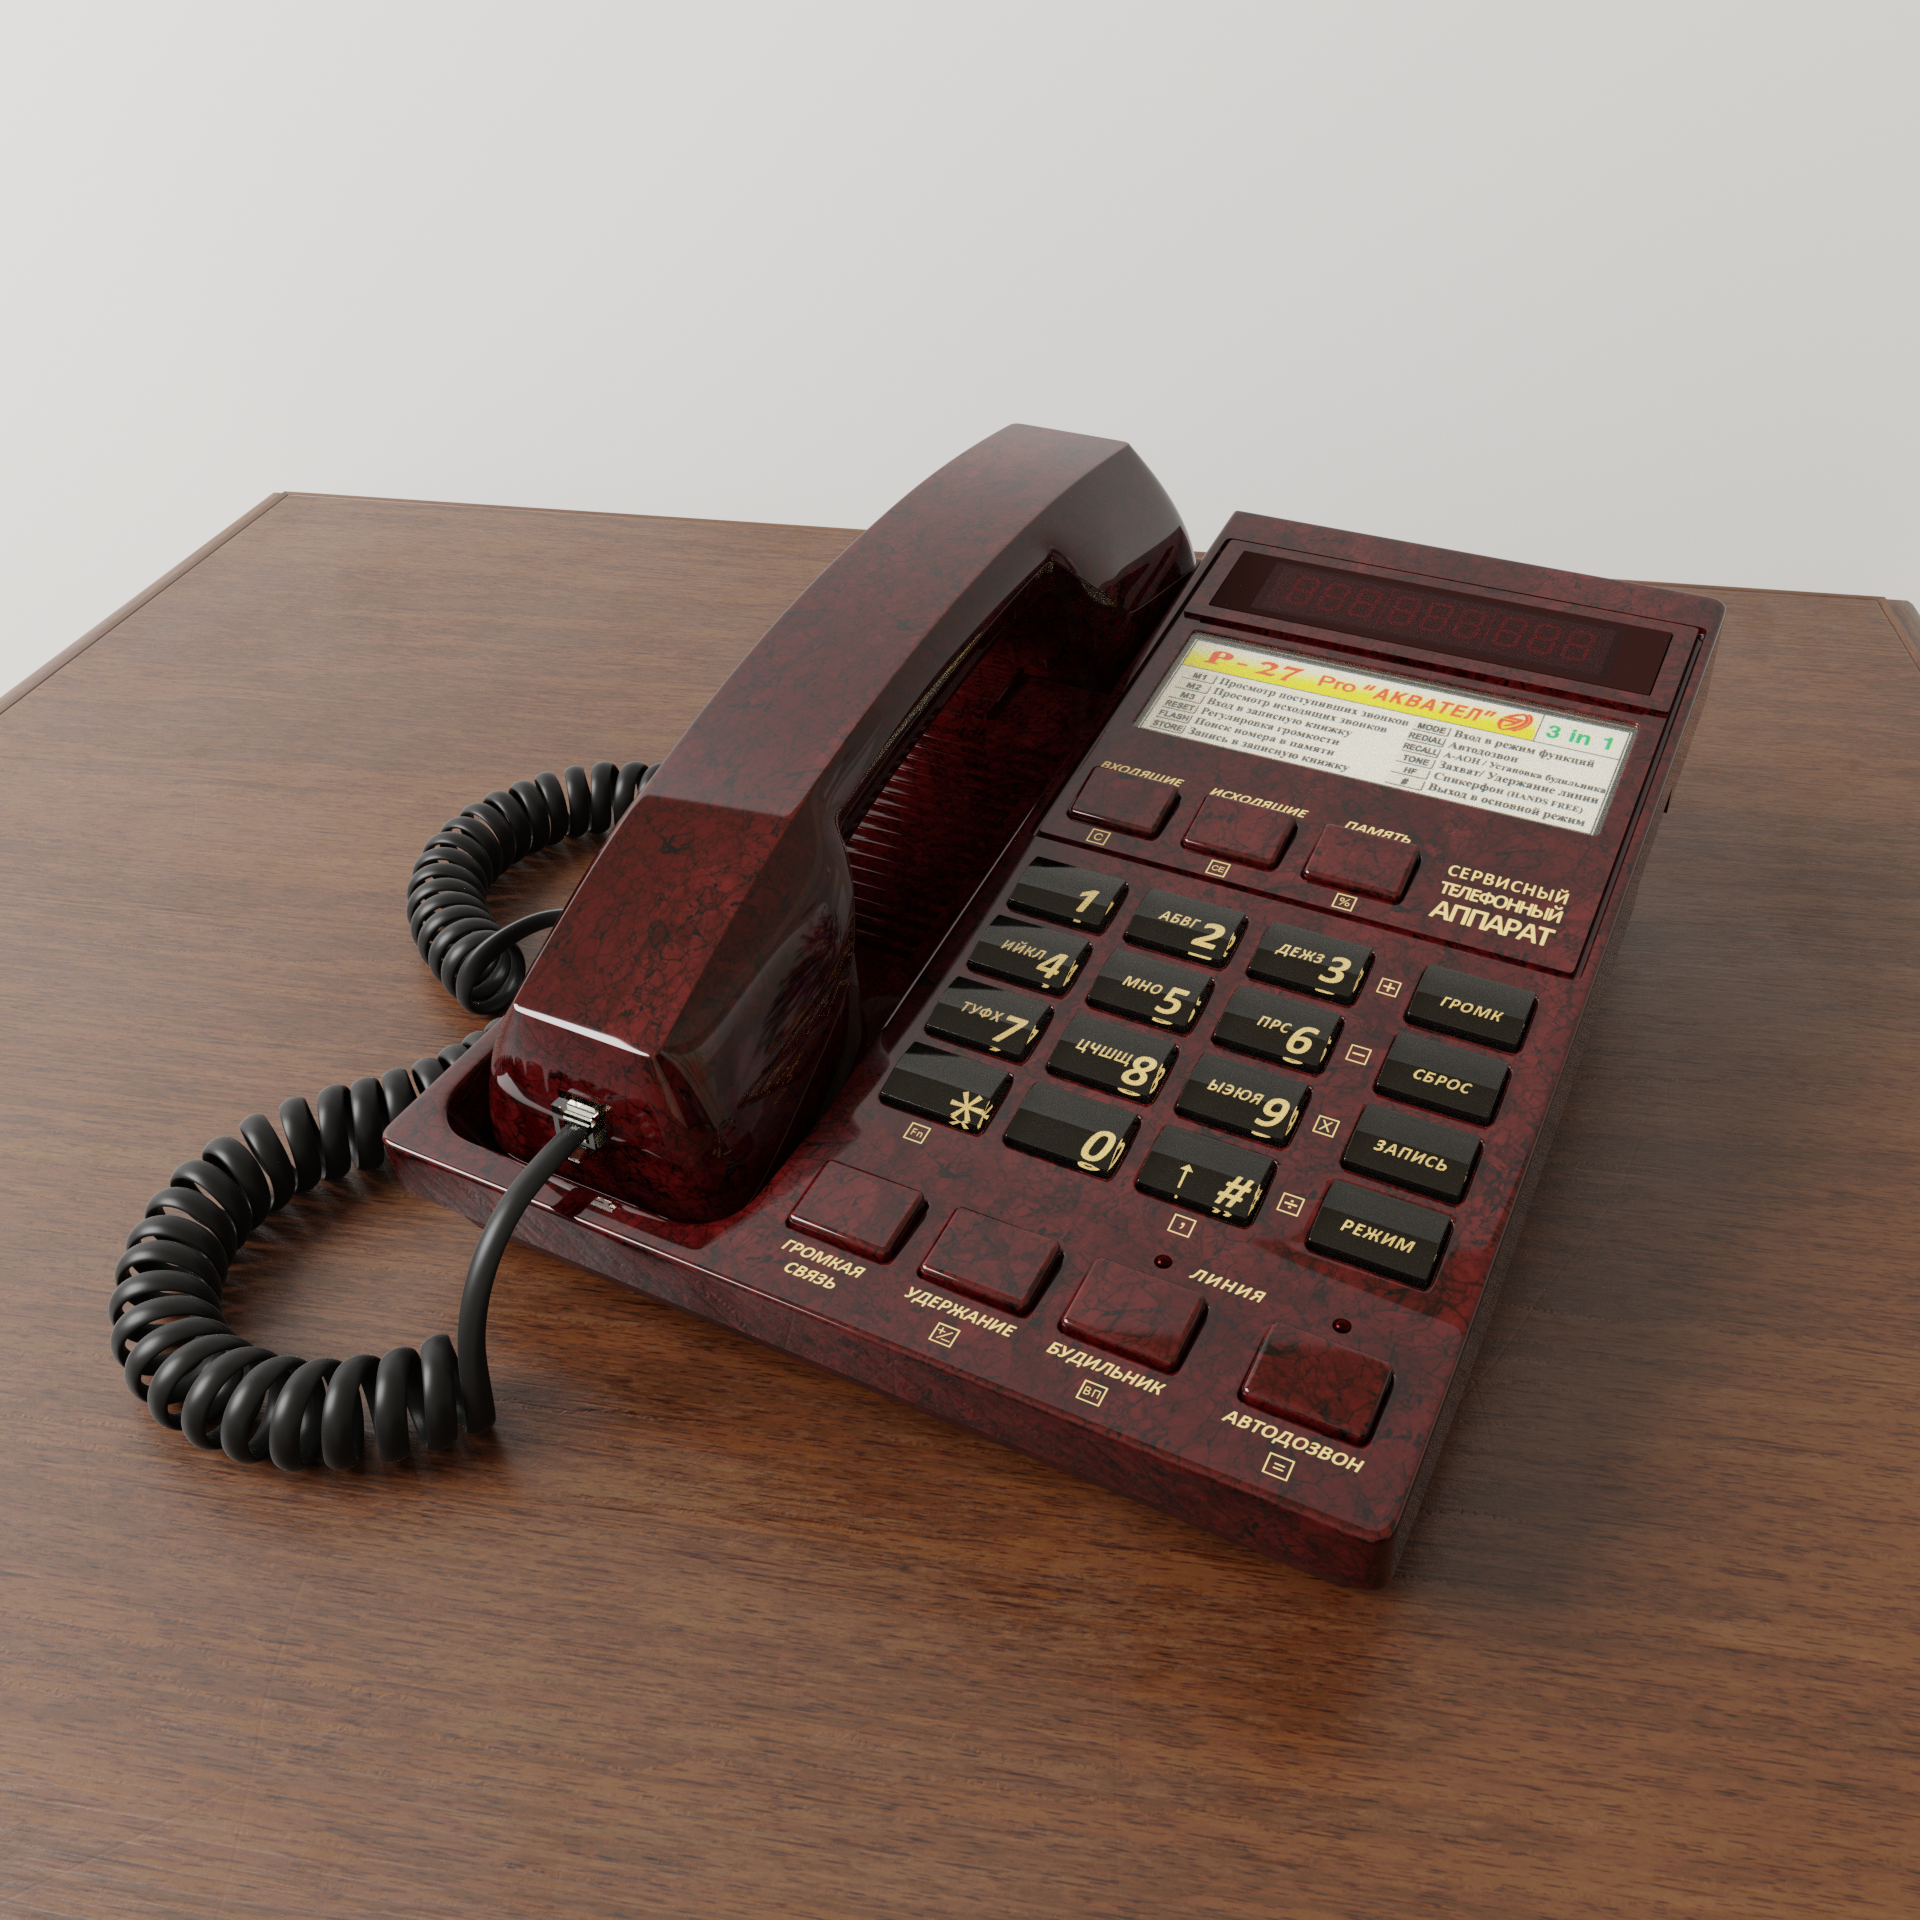 Telephone P-27 preview image 1